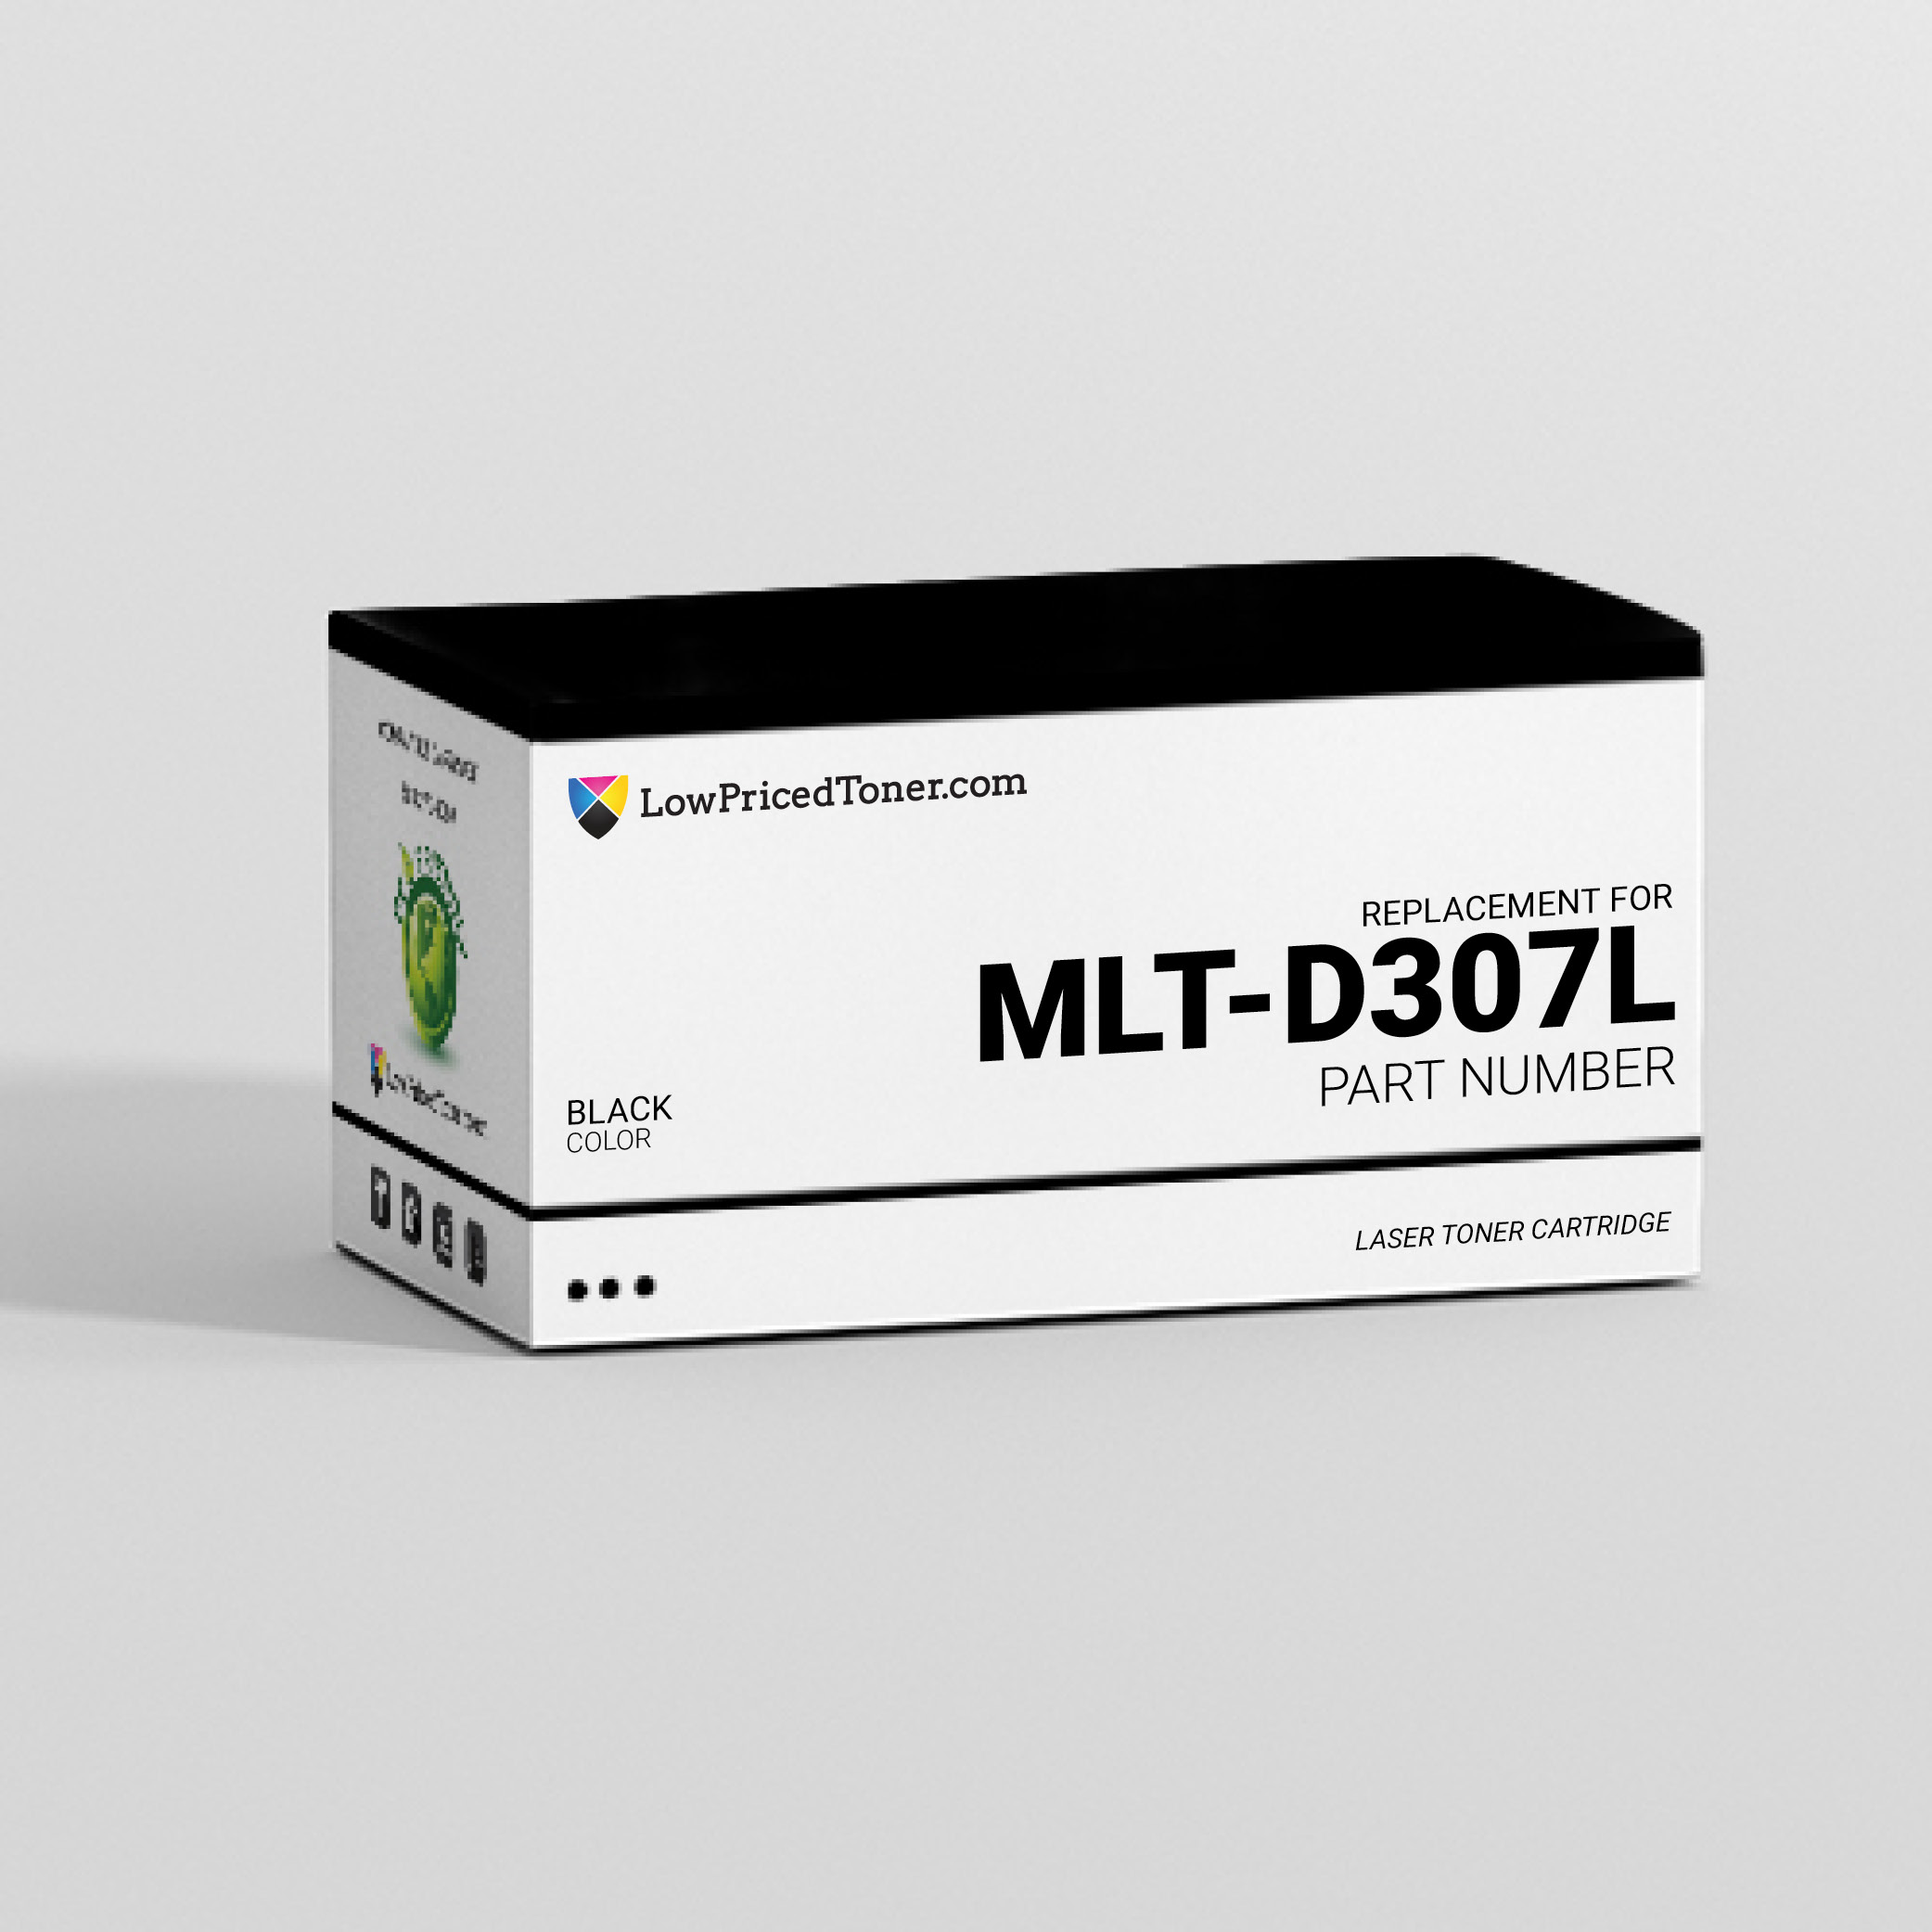 Samsung MLT-D307L Compatible Black Laser Toner Cartridge